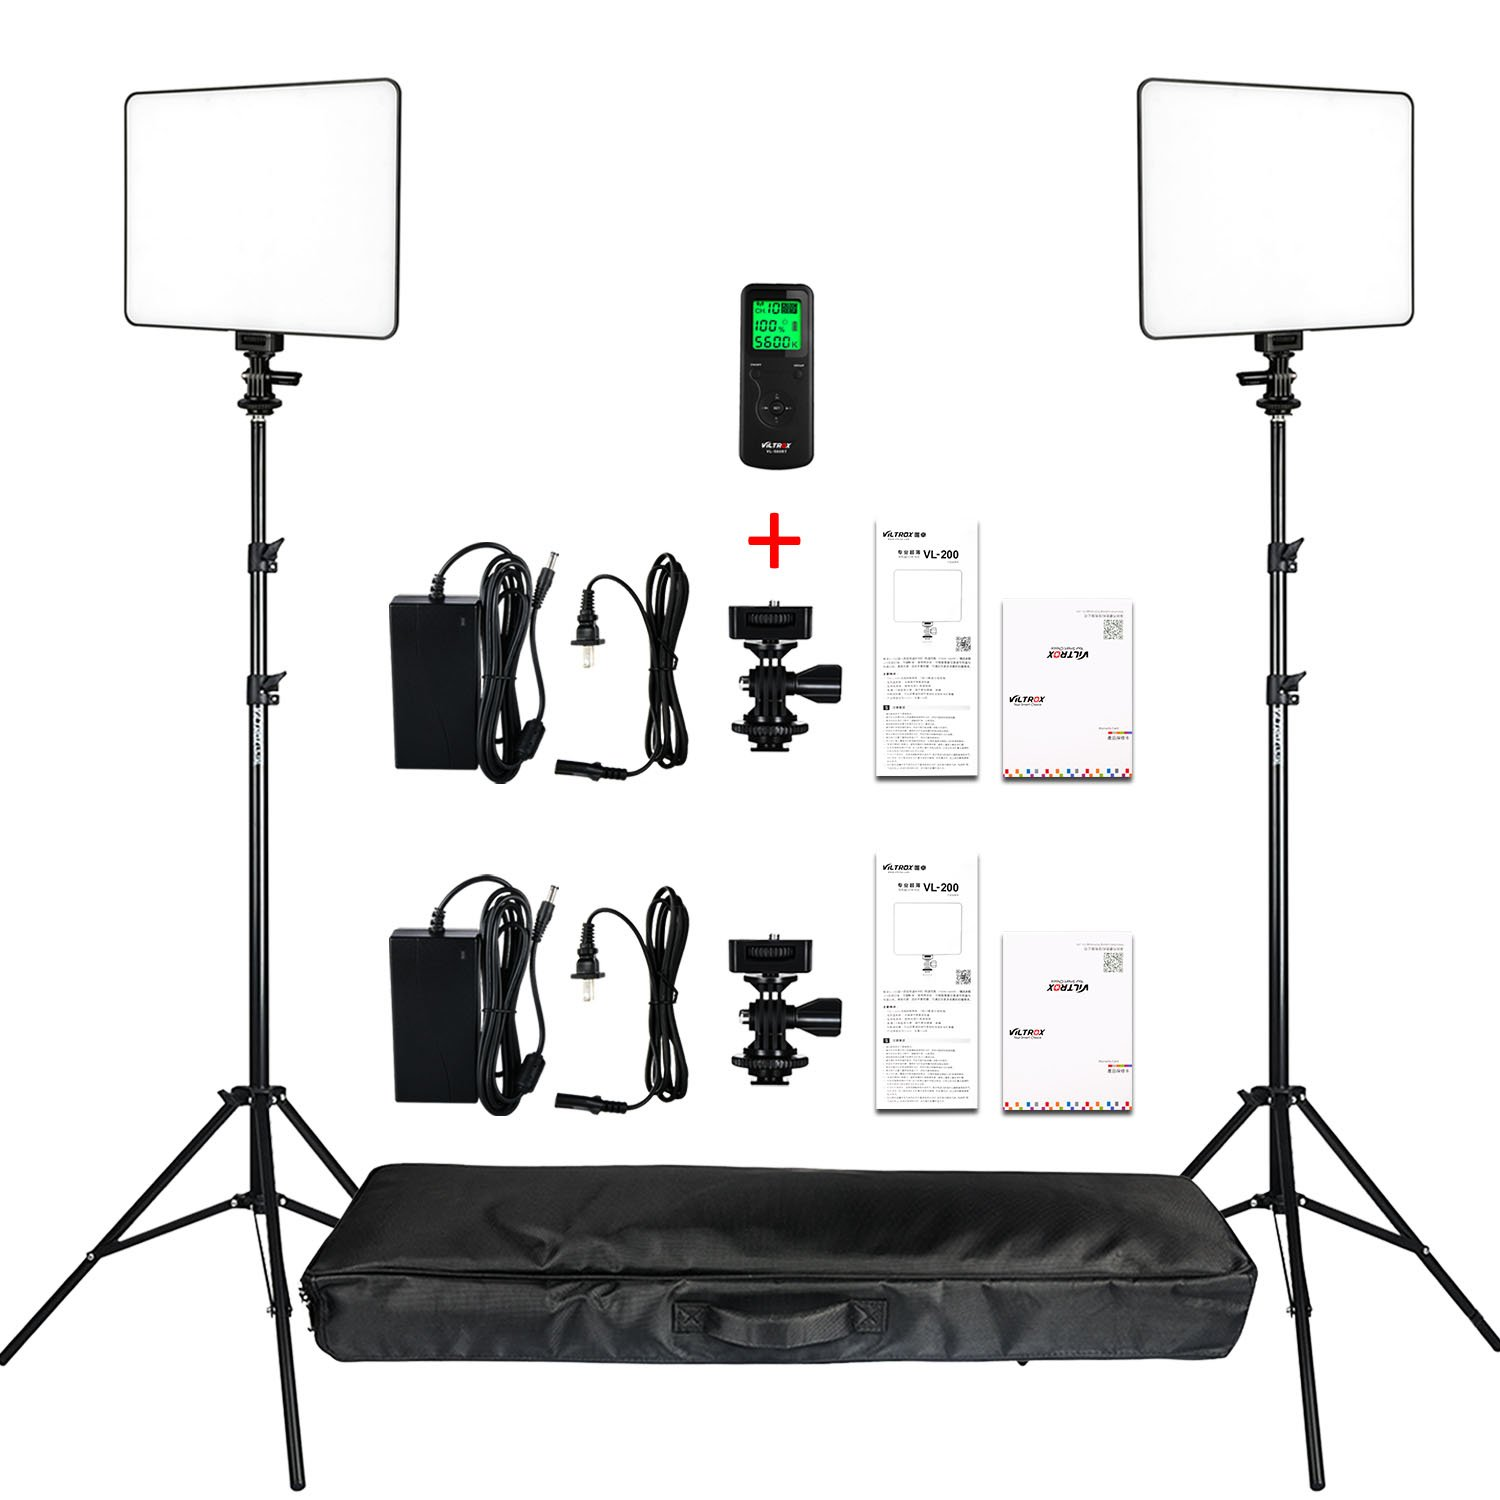 VILTROX 2-Pack VL-200 3300K-5600K CRI95 Super Slim LED Video Light Panel Photography Lighting Kit with Light Stand, Hot Shoe Adapter, Remote Controller, AC Adapter for YouTube Studio Video Shooting …